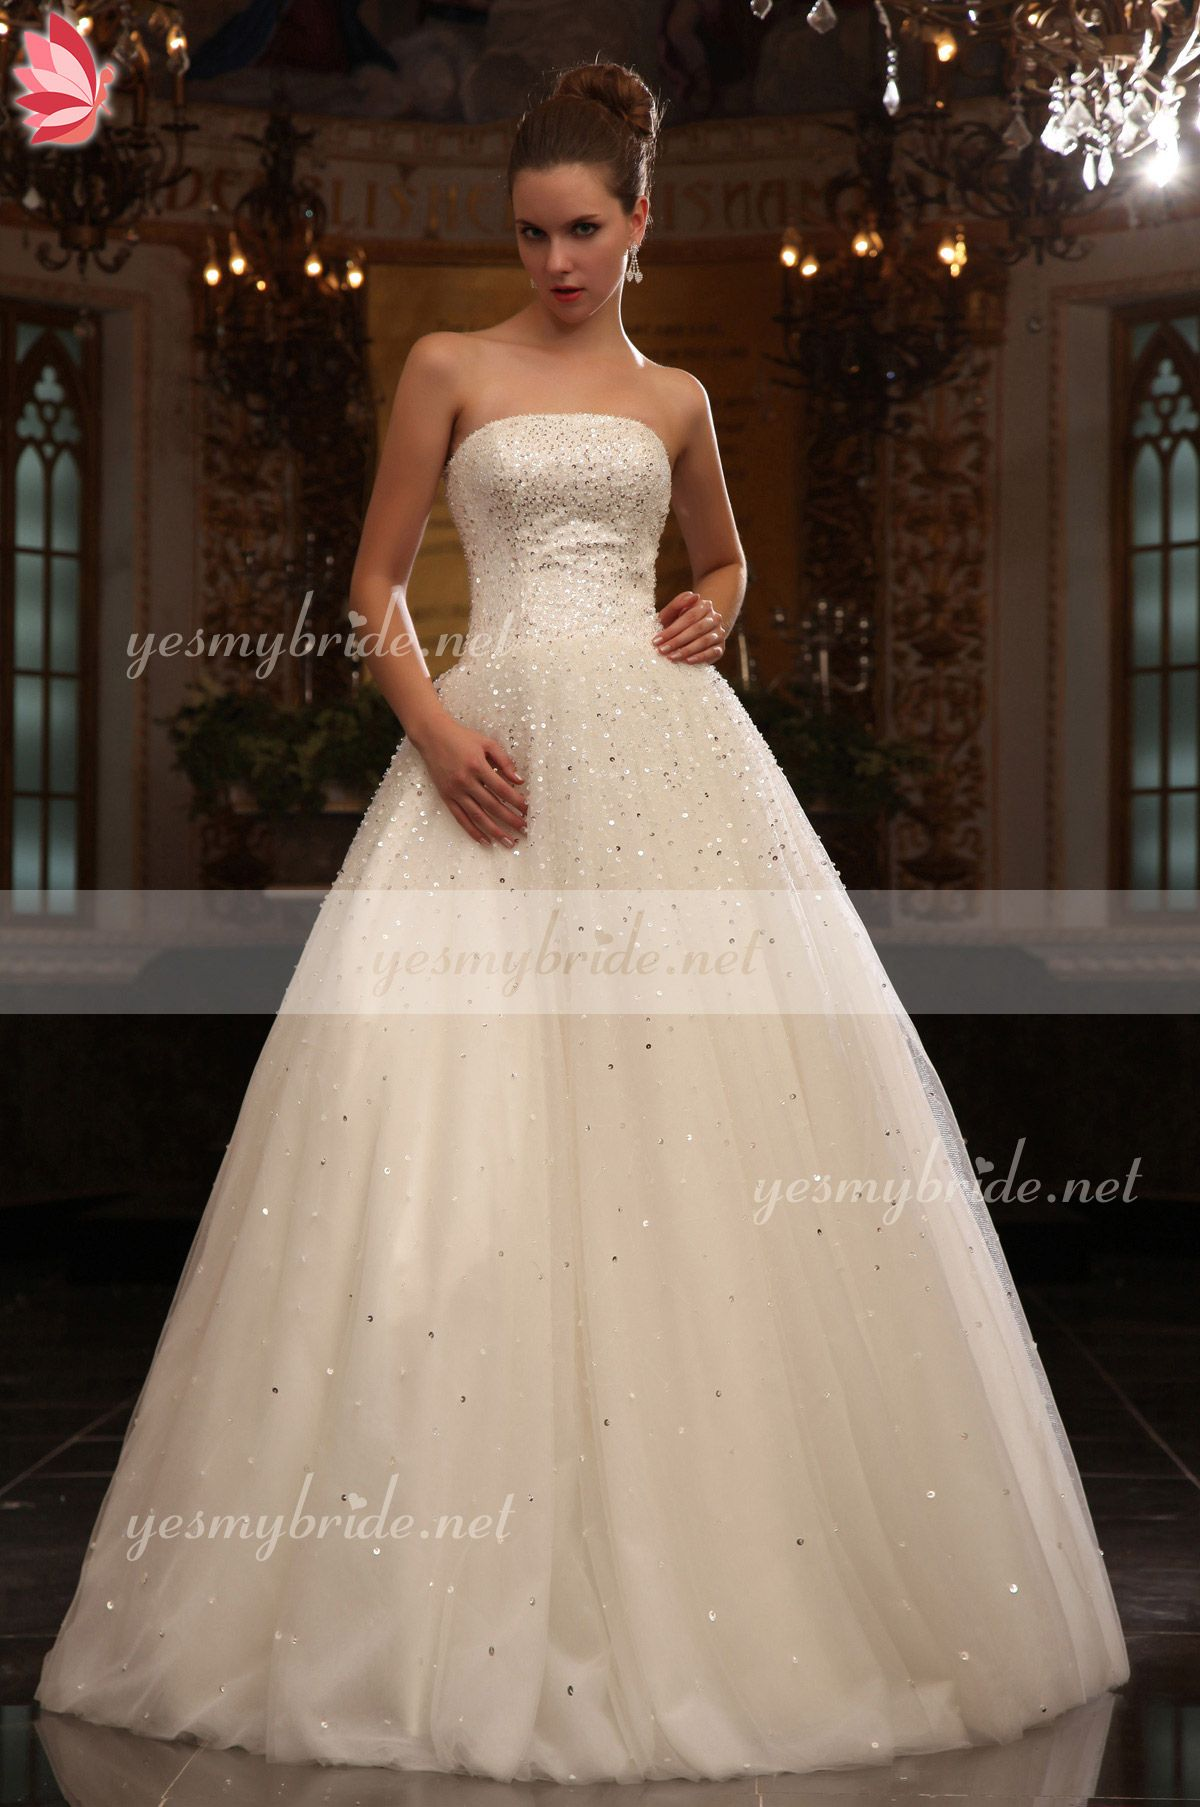 Strapless Dazzling Sequins Basque Ball Gown Wedding Dress Now ...